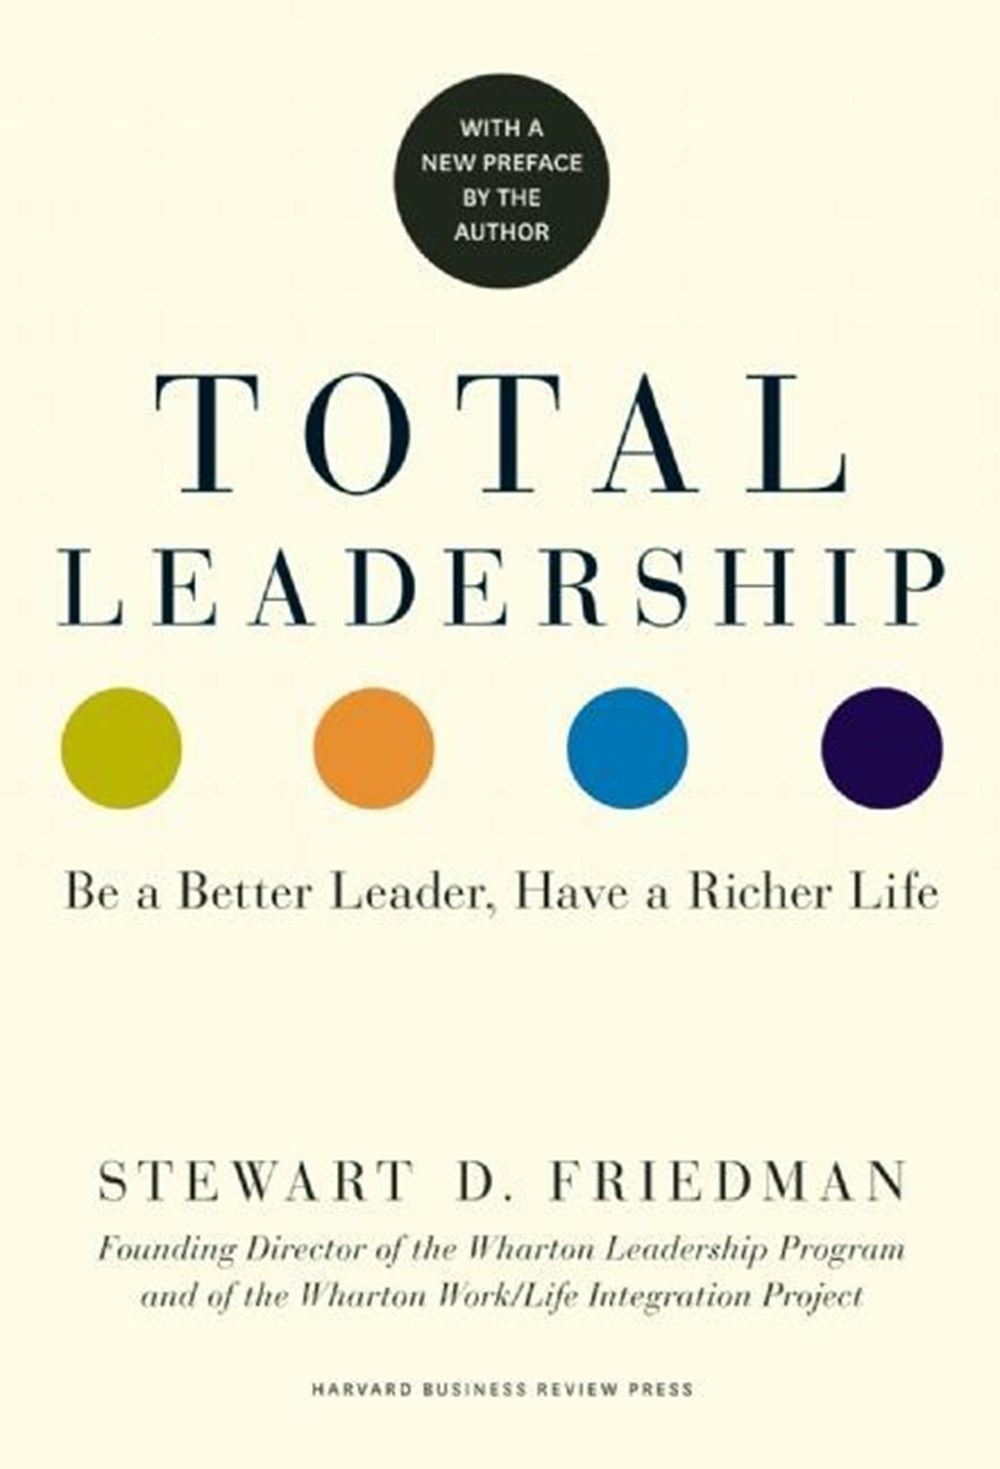 Total Leadership Be a Better Leader, Have a Richer Life